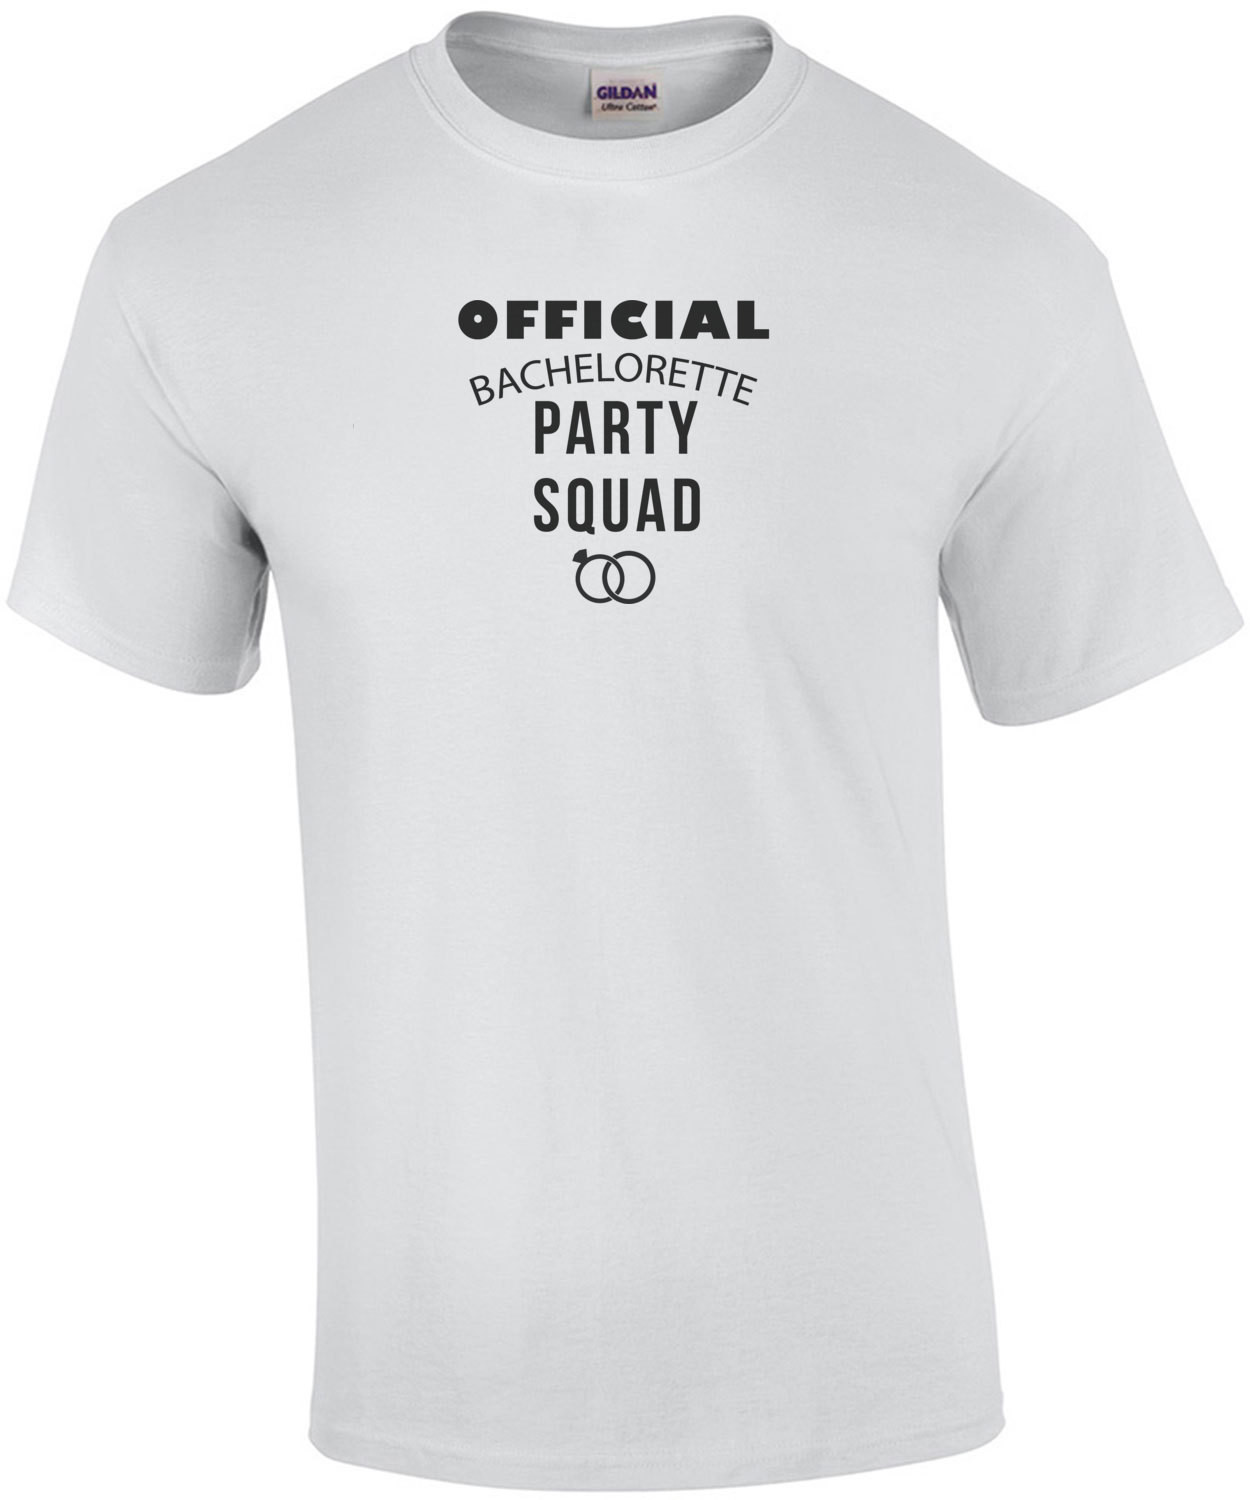 Official bachelorette party squad - bachelorette t-shirt